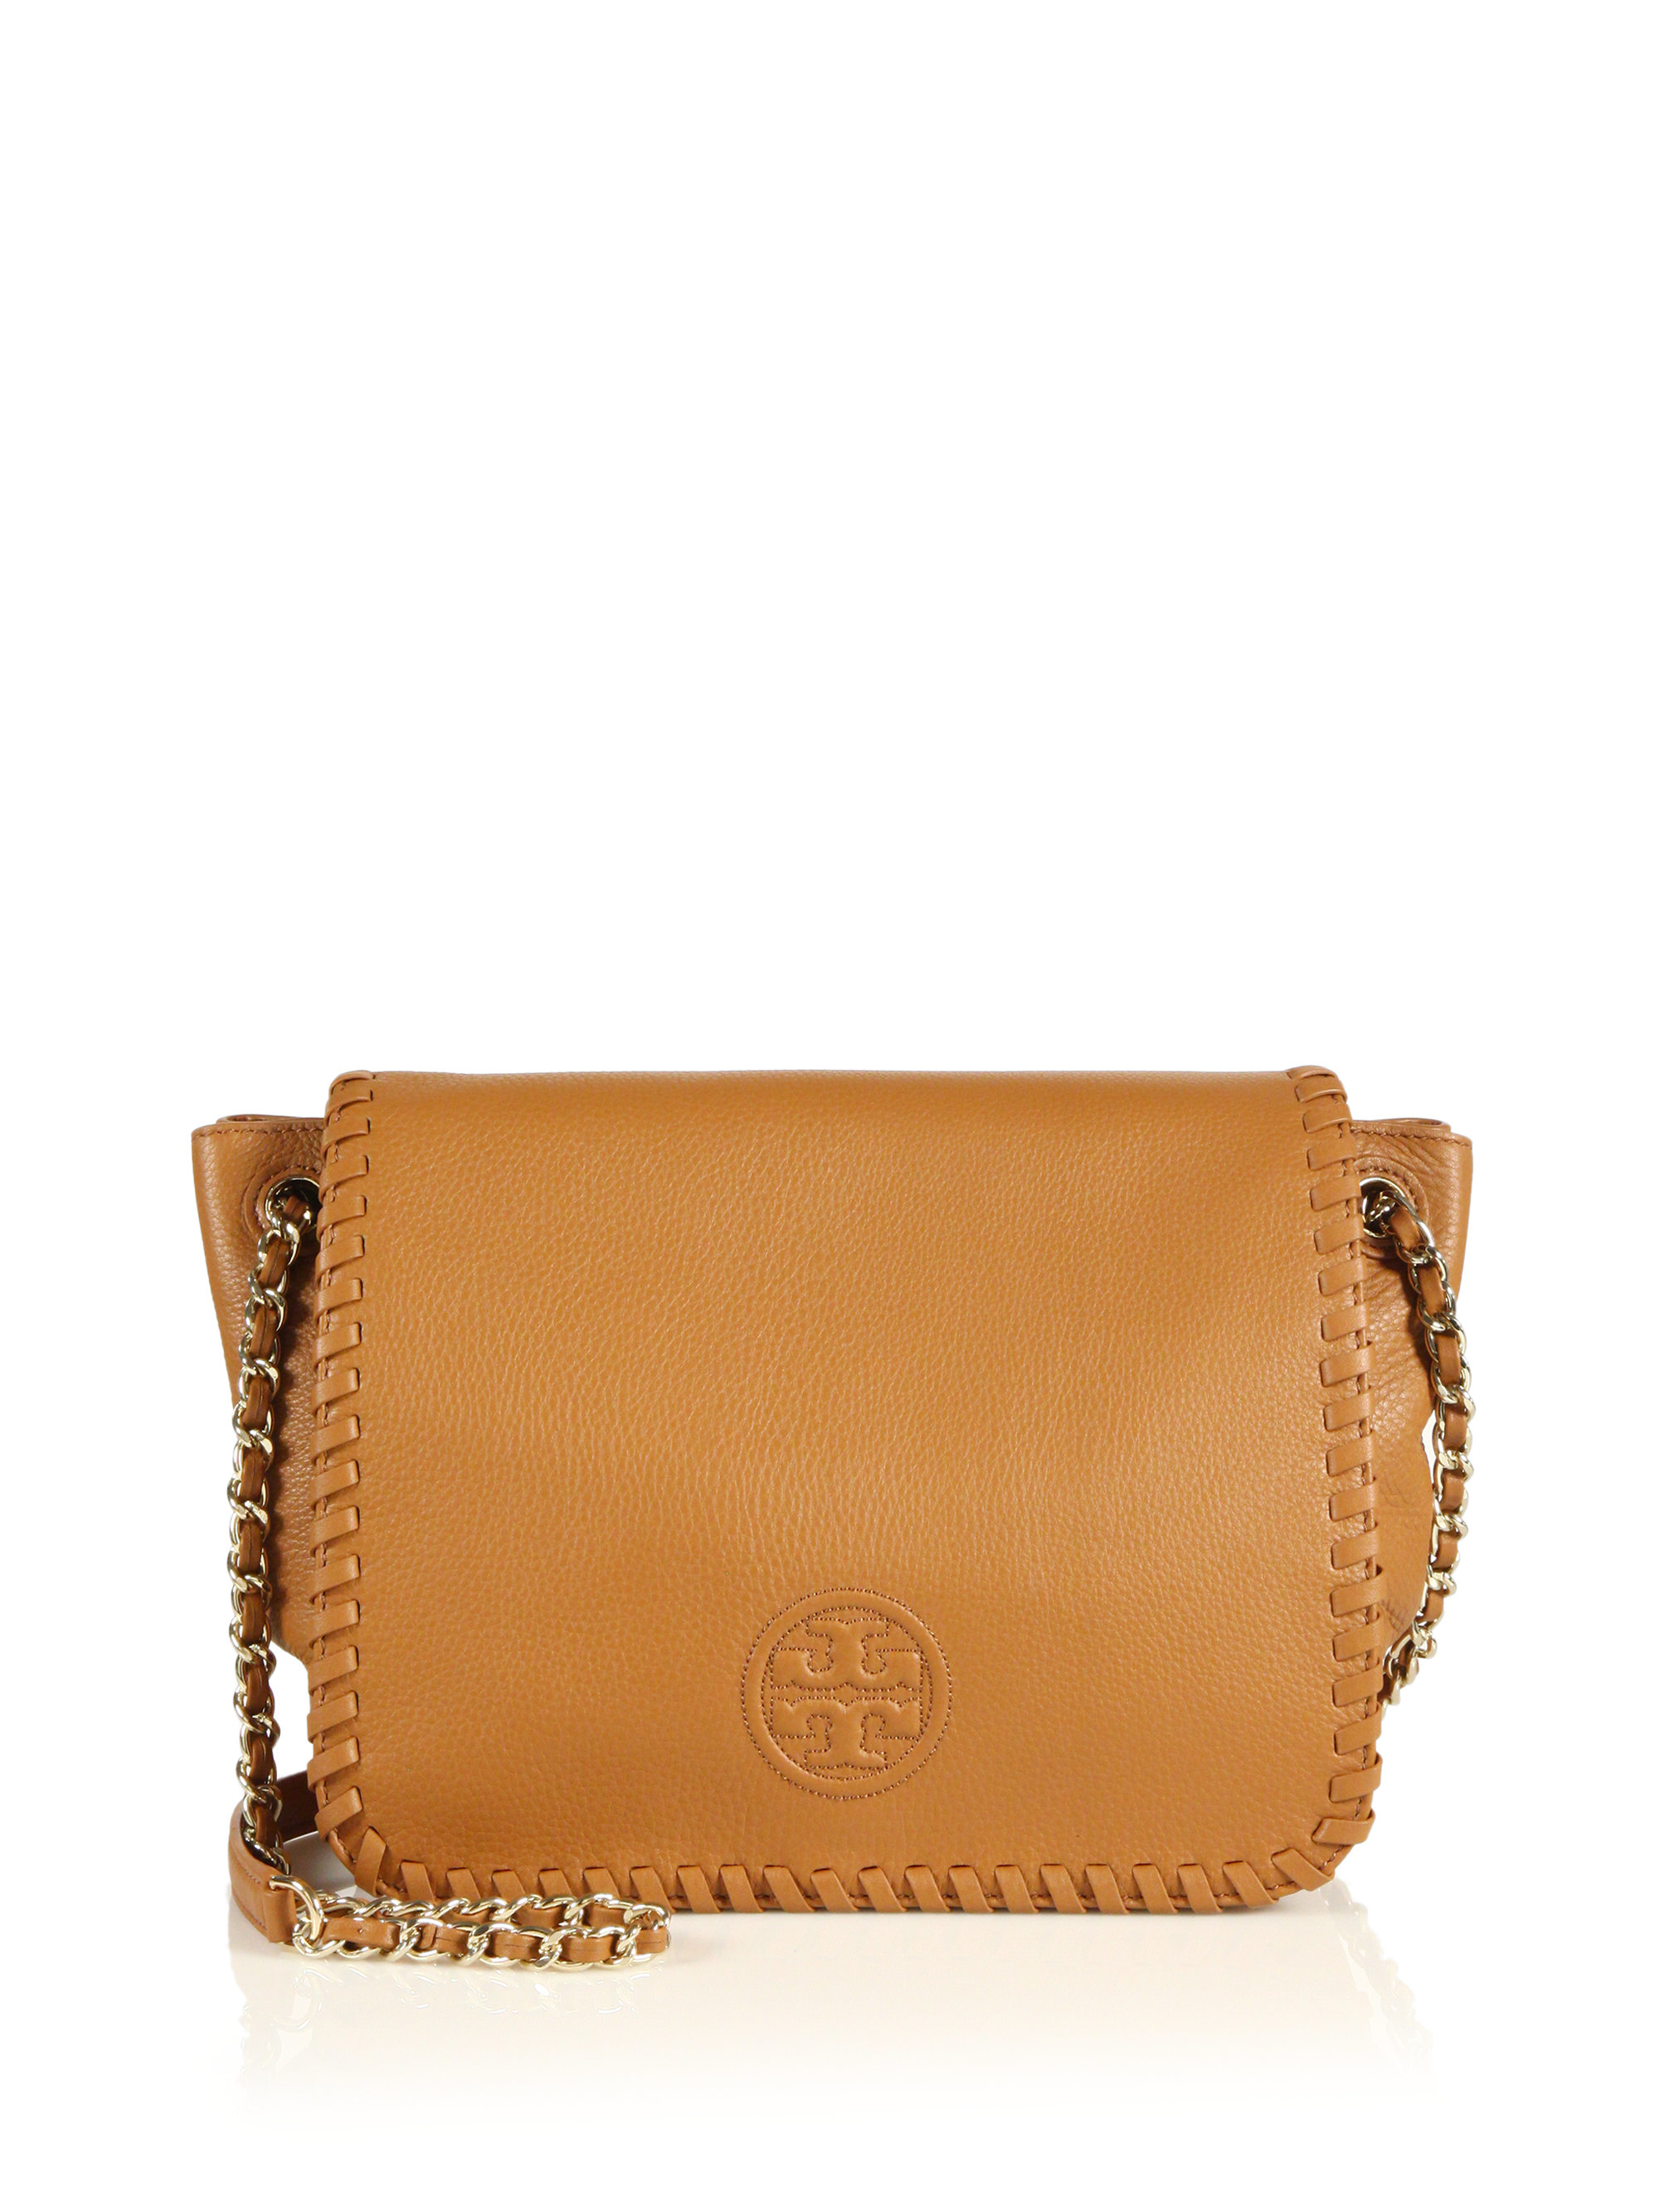 1ca56ebdced2 Lyst - Tory Burch Marion Small Leather Flap Shoulder Bag in Brown